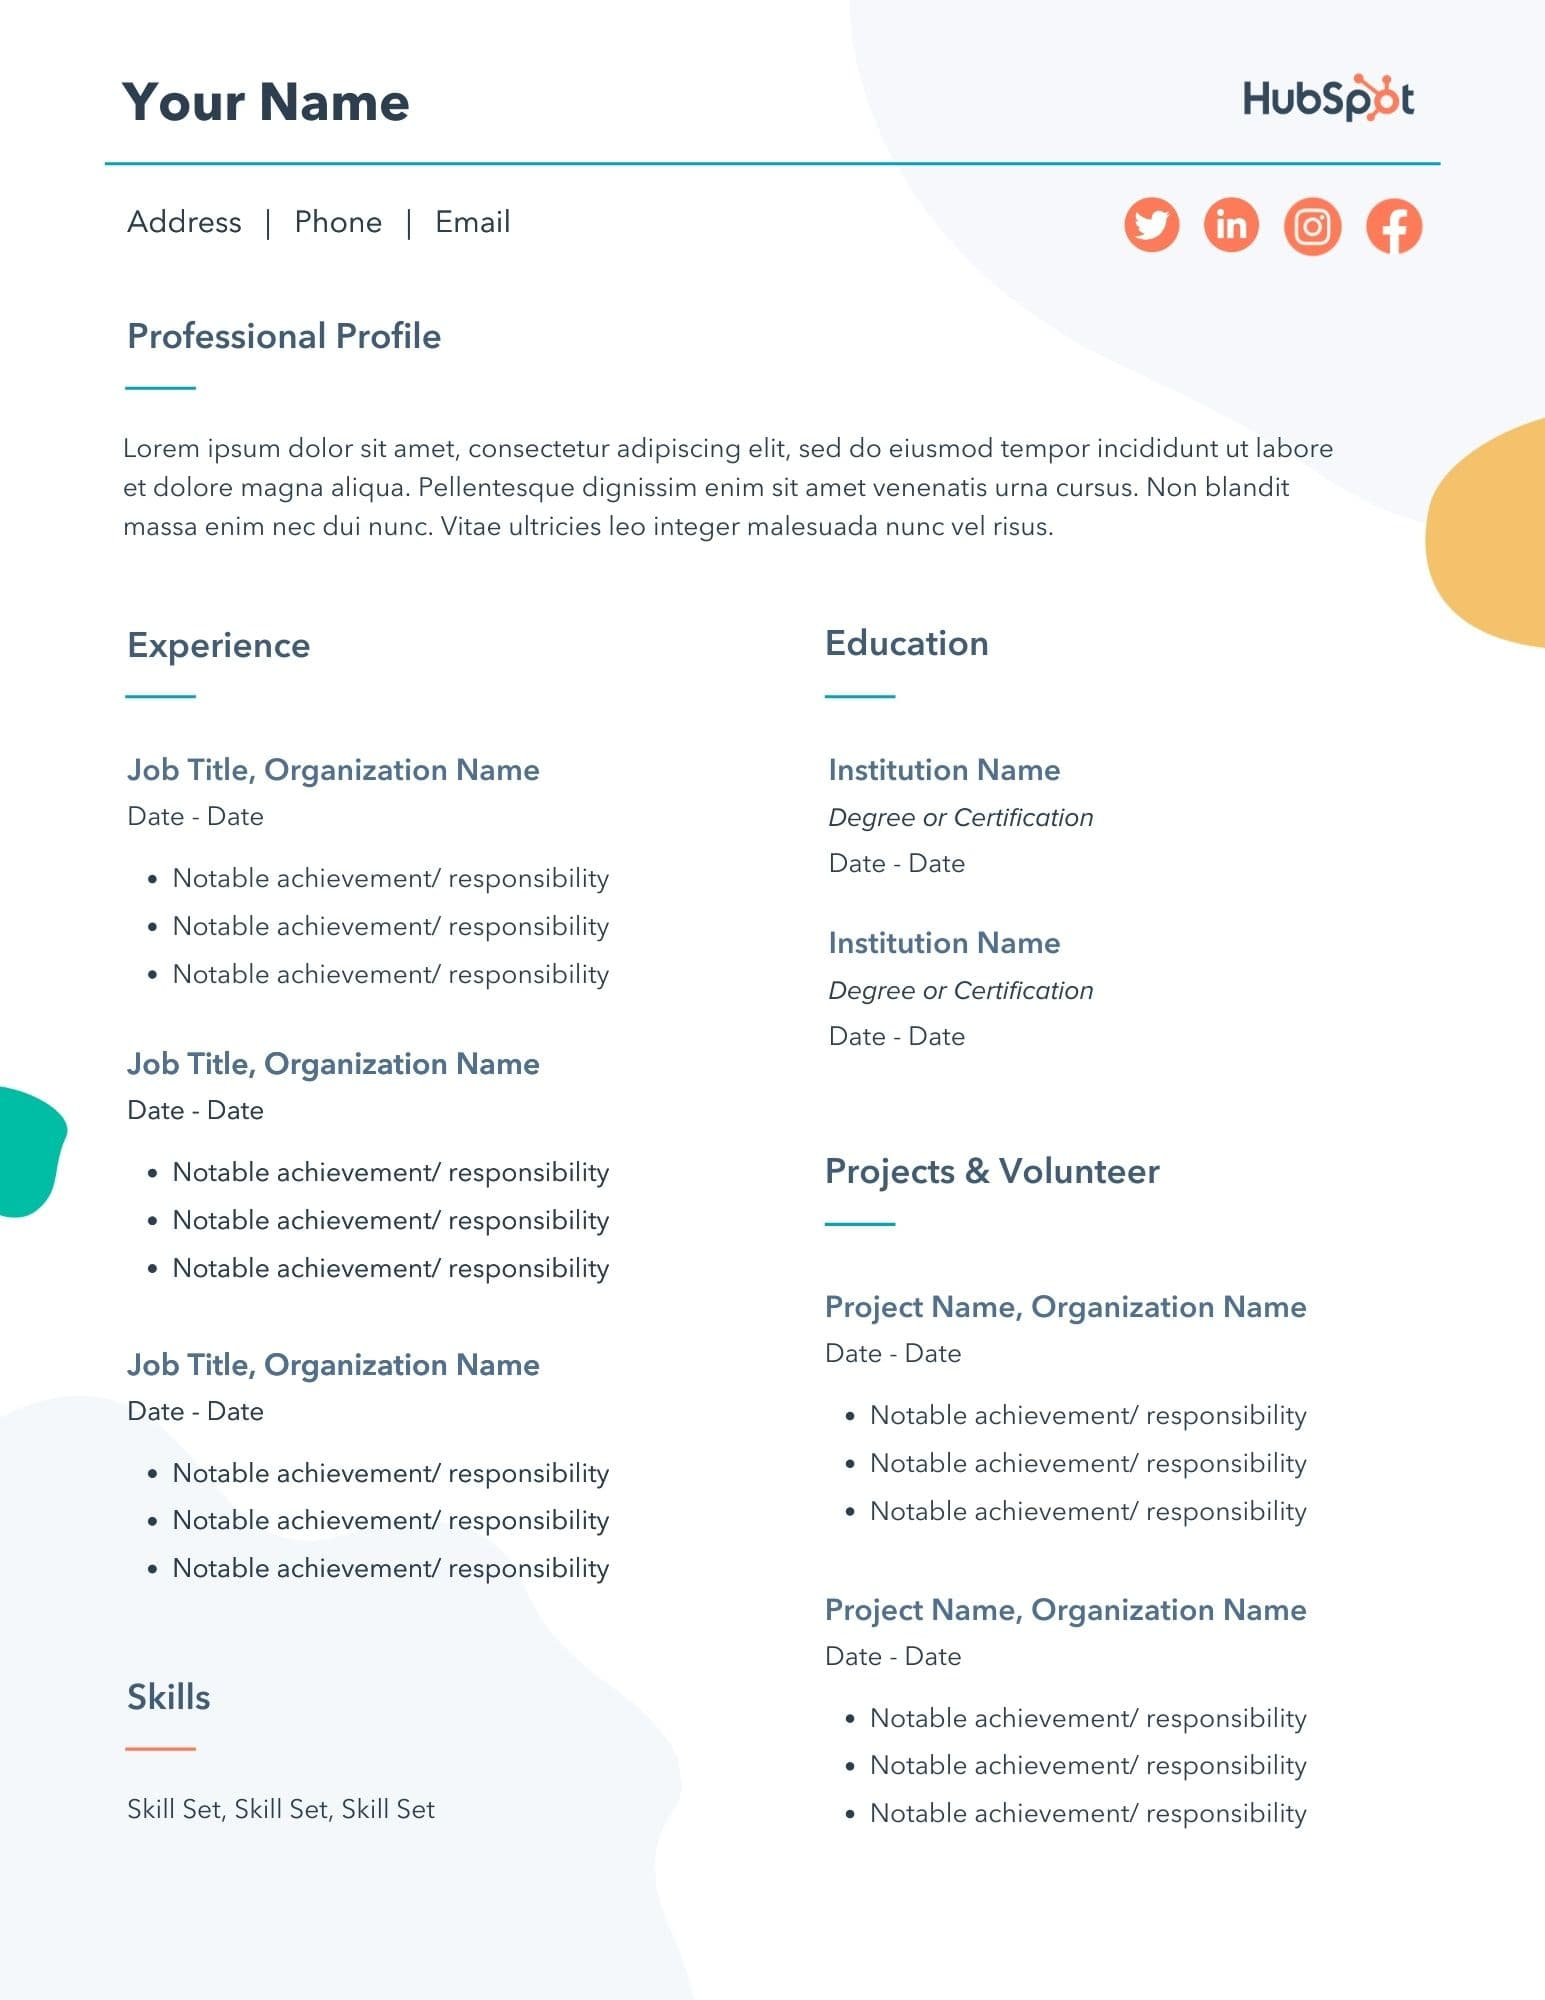 free resume templates for microsoft word to make your own professional samples template Resume Professional Resume Samples Free